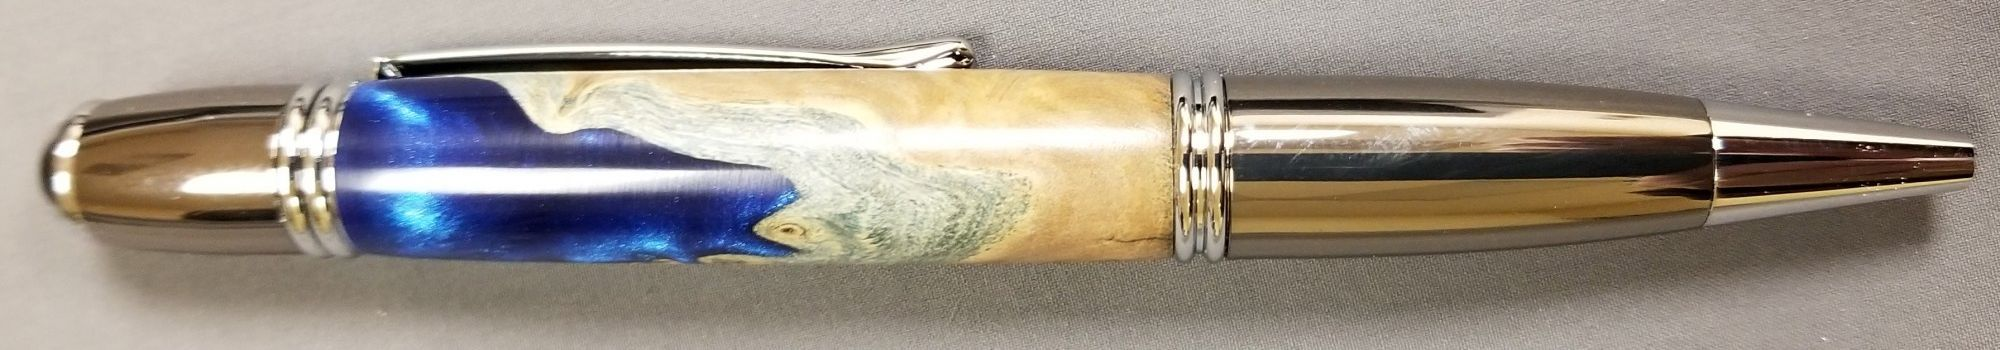 Gatsby Style Pen with Blue & Maple Burl